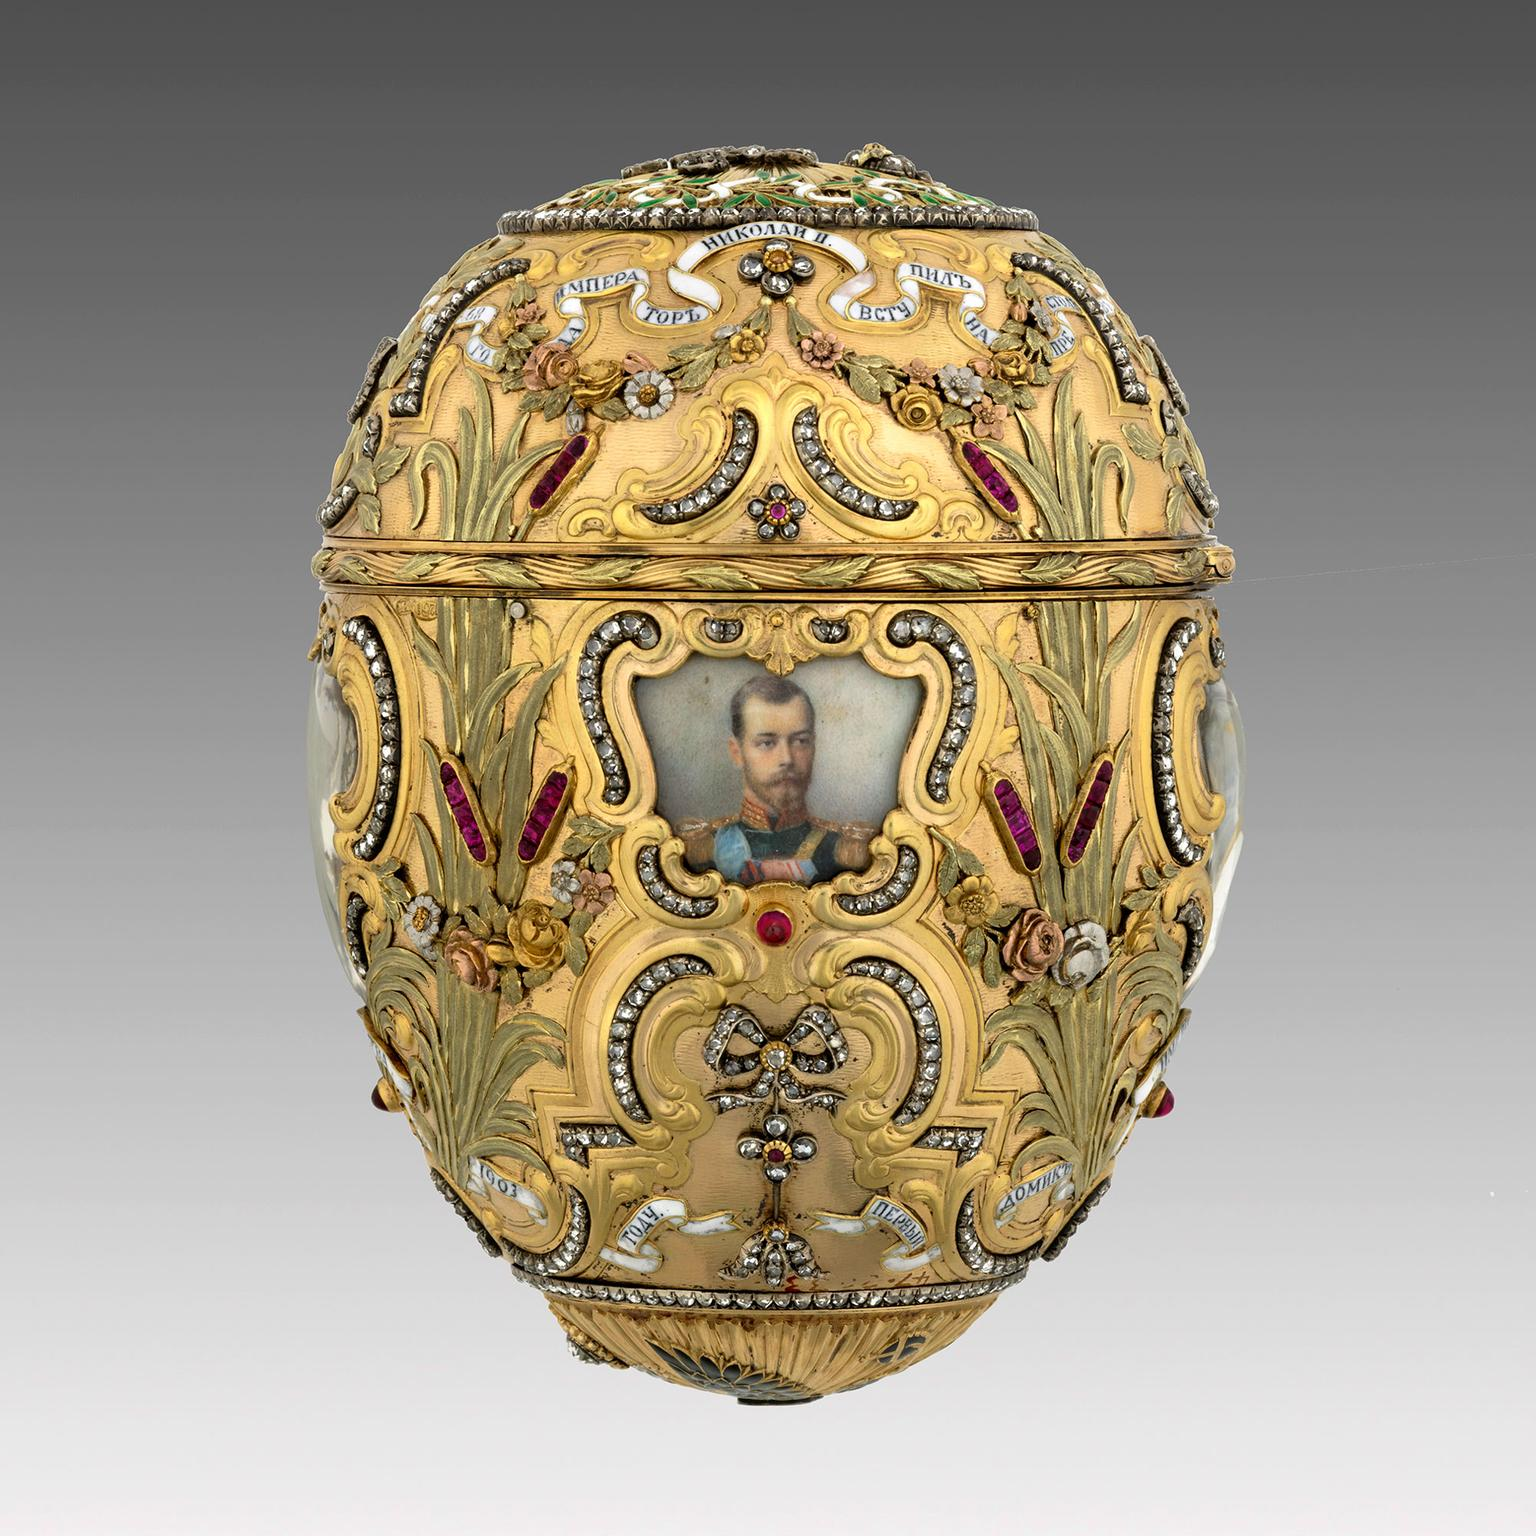 Faberge Imperial Peter the Great Easter egg